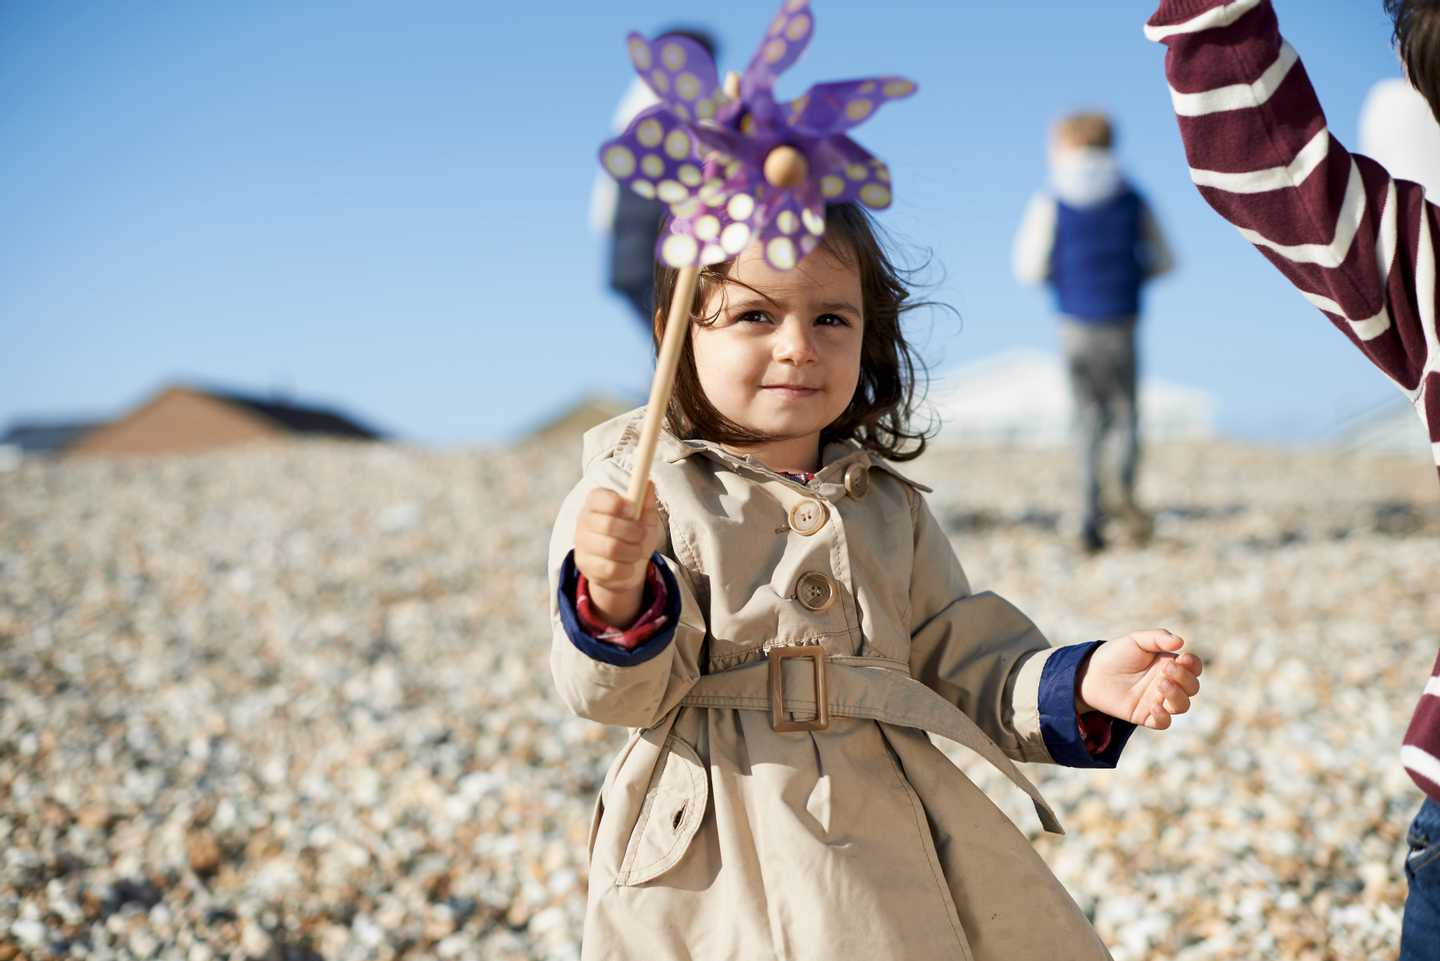 A little girl on the beach with a flower whirly windmill